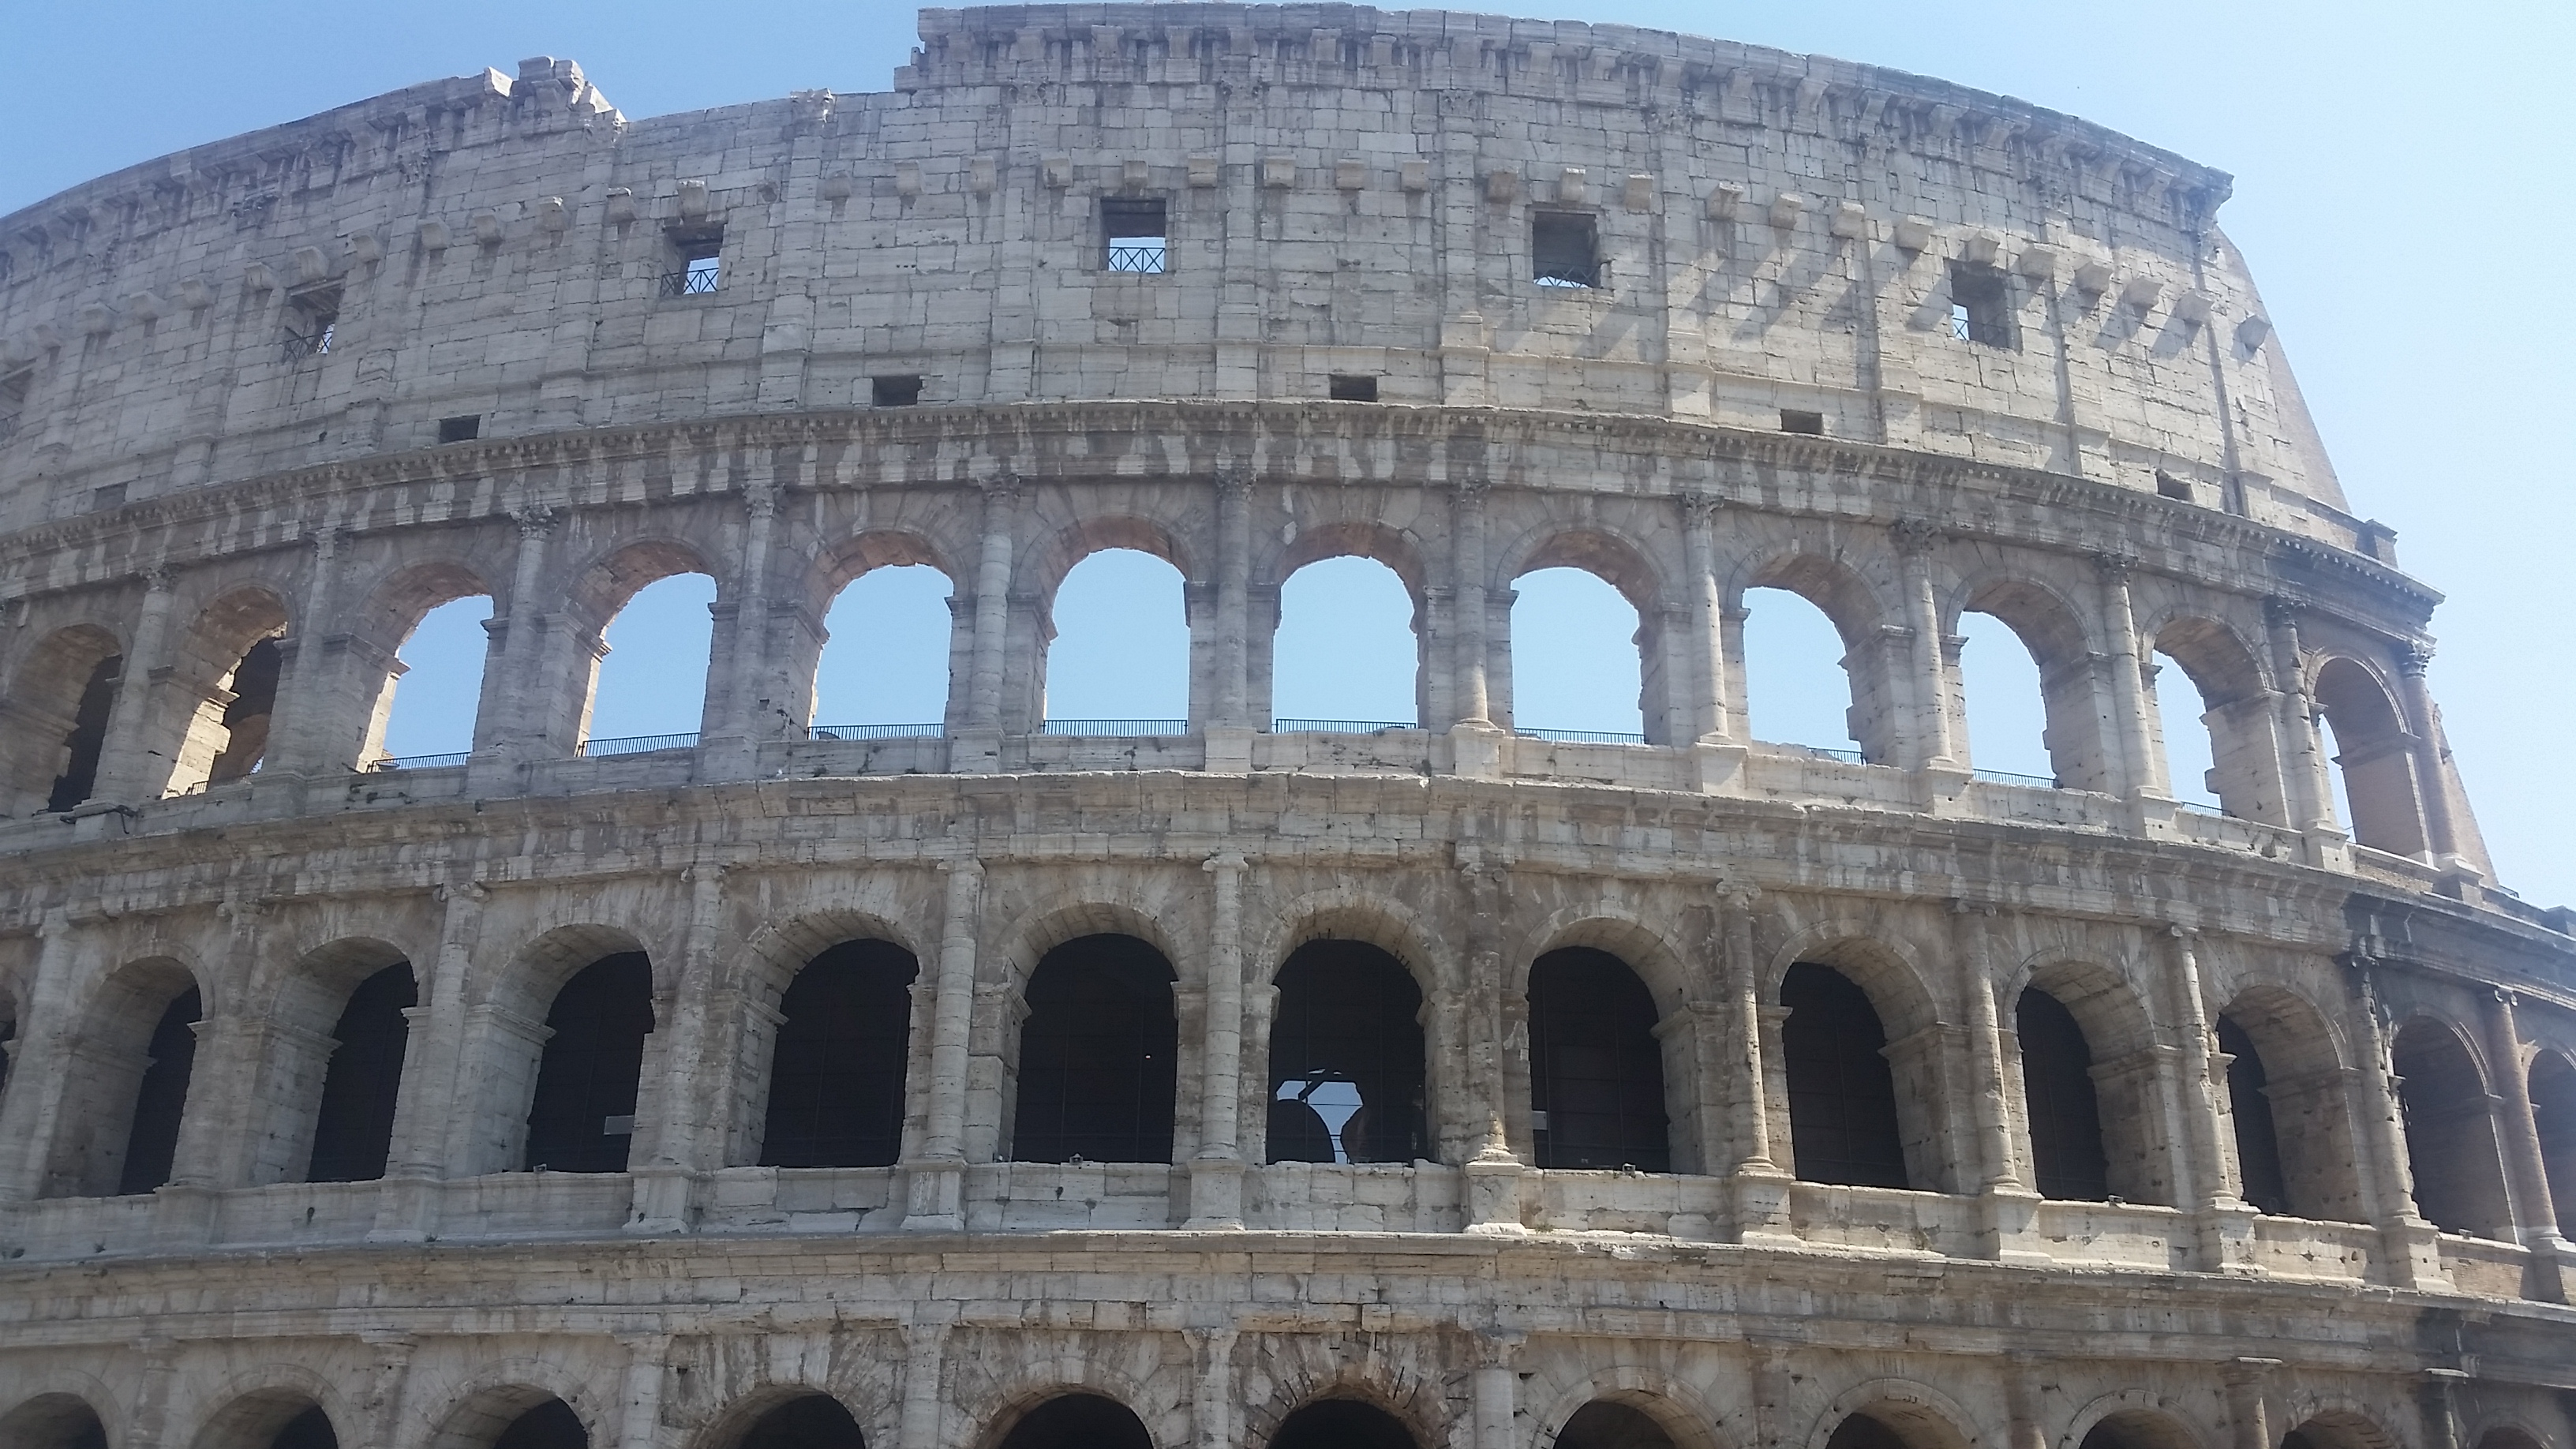 How to get into the Roman Colosseum without waiting in a long line